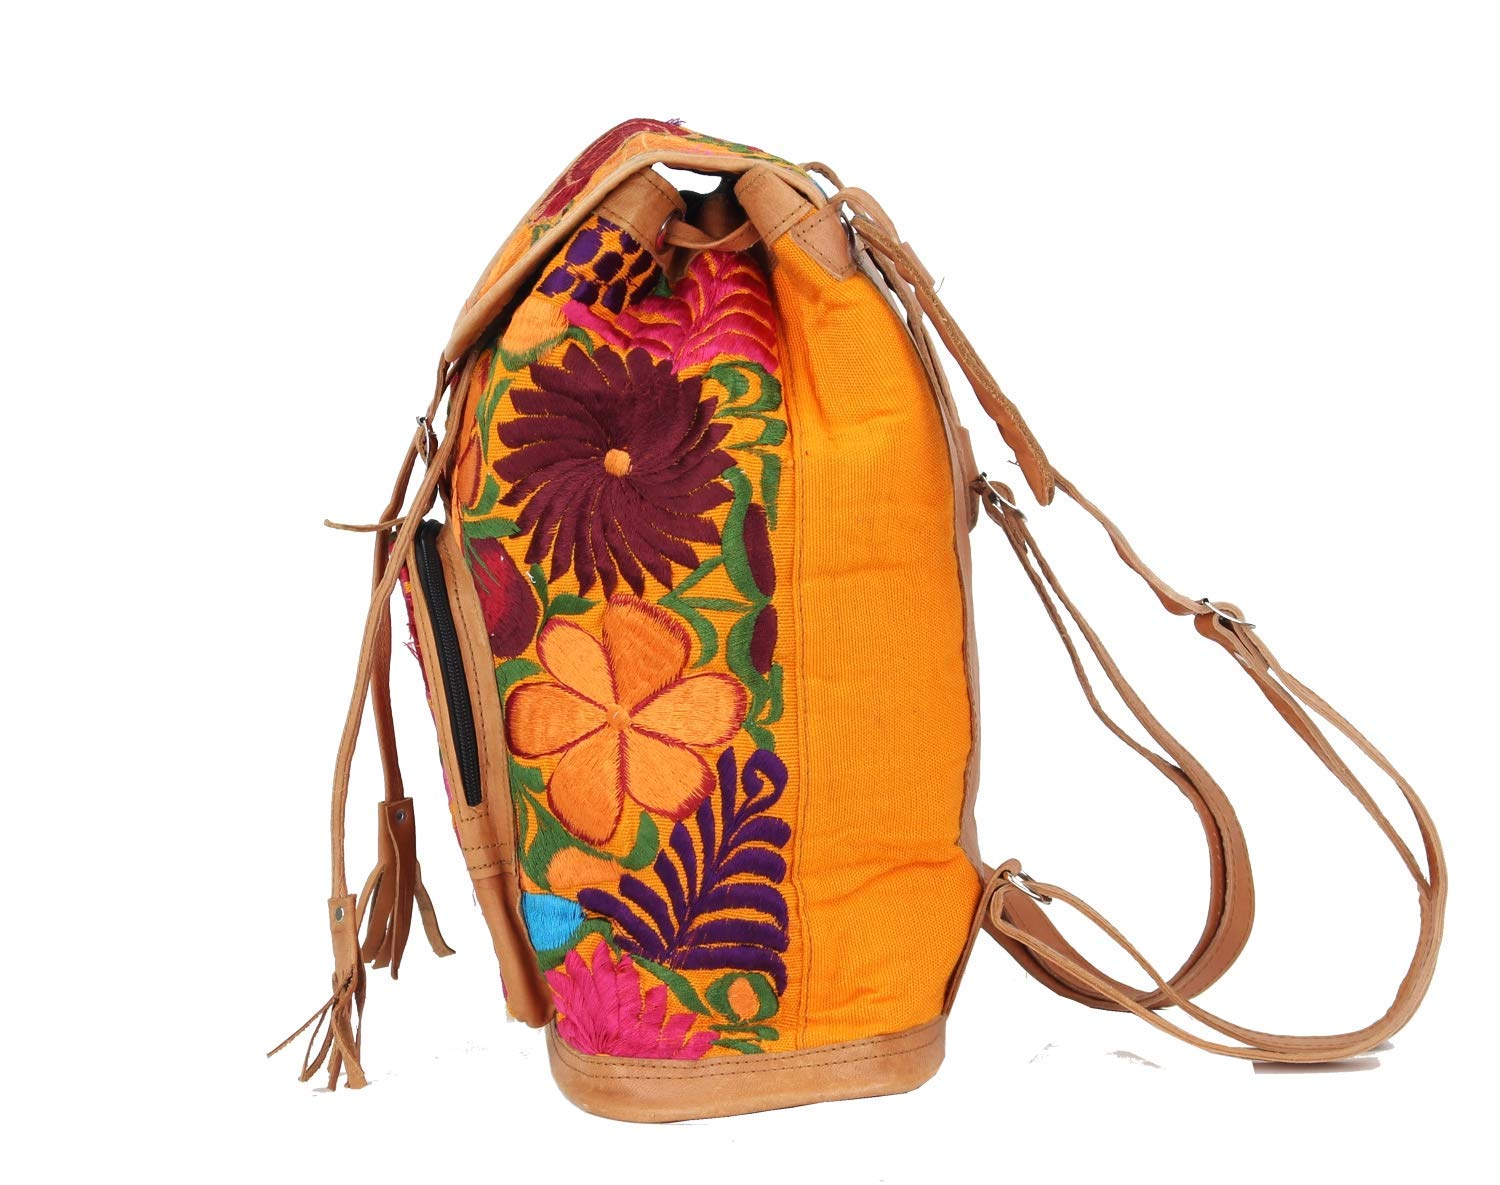 Amazon.com: Boho Backpack - Mexican Leather Embroidered Backpack - Hippie Backpack - Mochilas de mujer de moda - Orange: Handmade